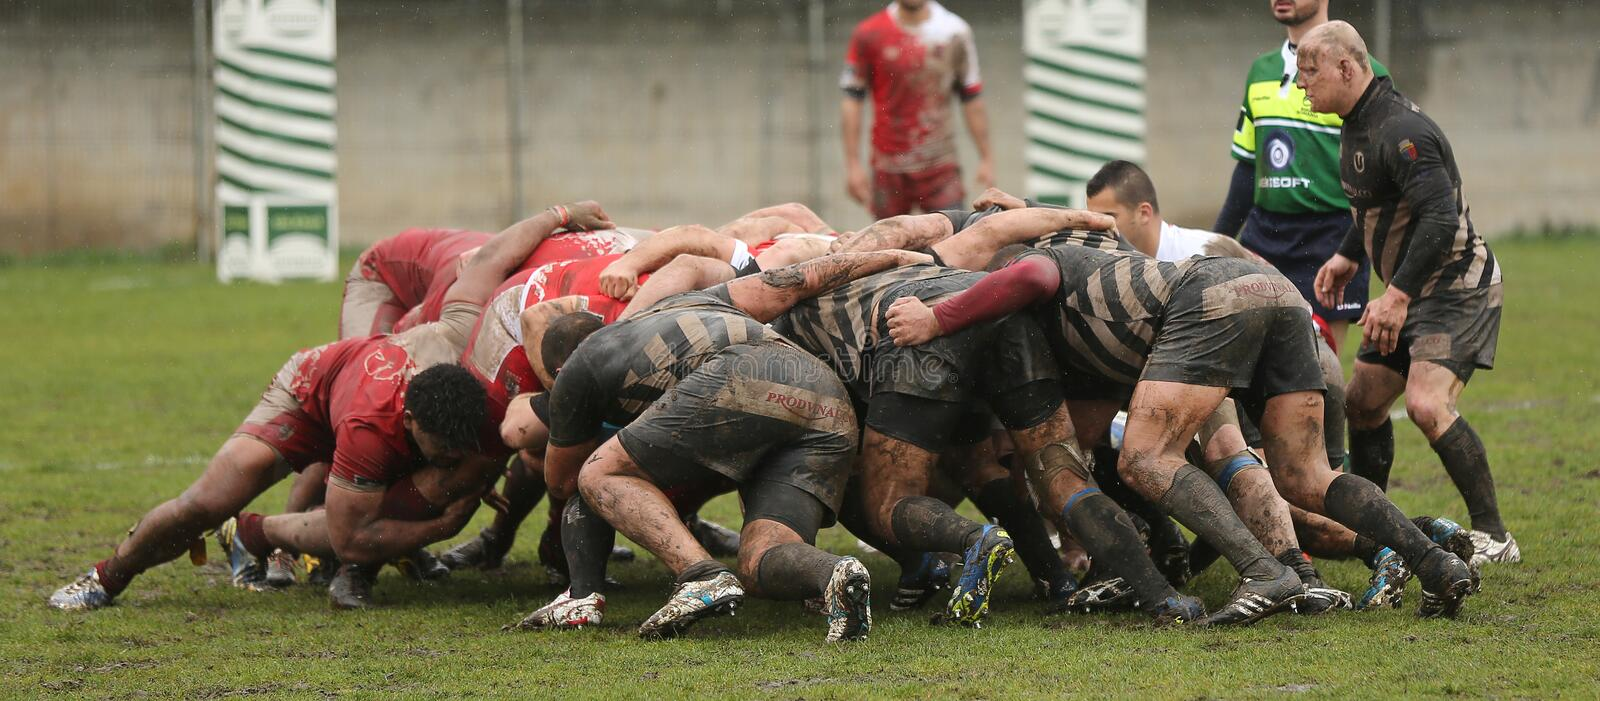 Rugby scrum stock images